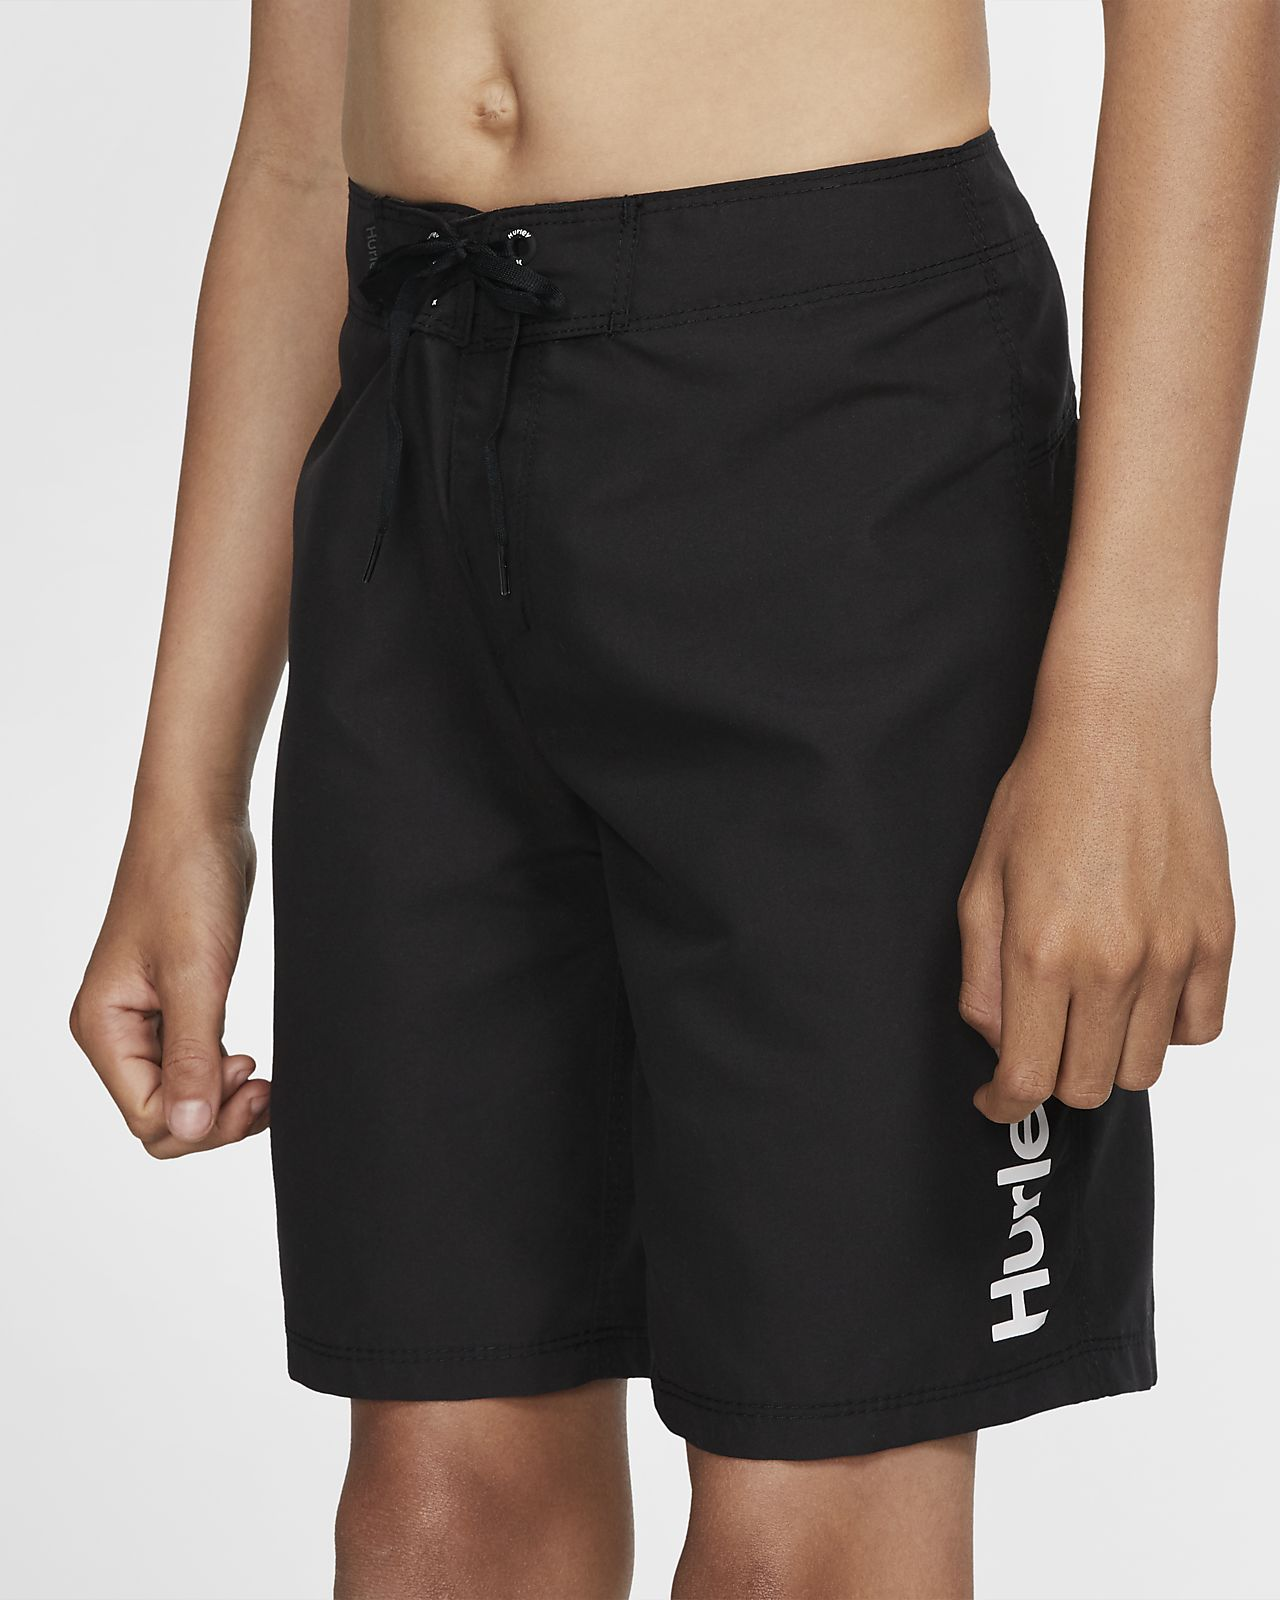 Shorts da surf Hurley One And Only Supersuede - Bambino/Ragazzo